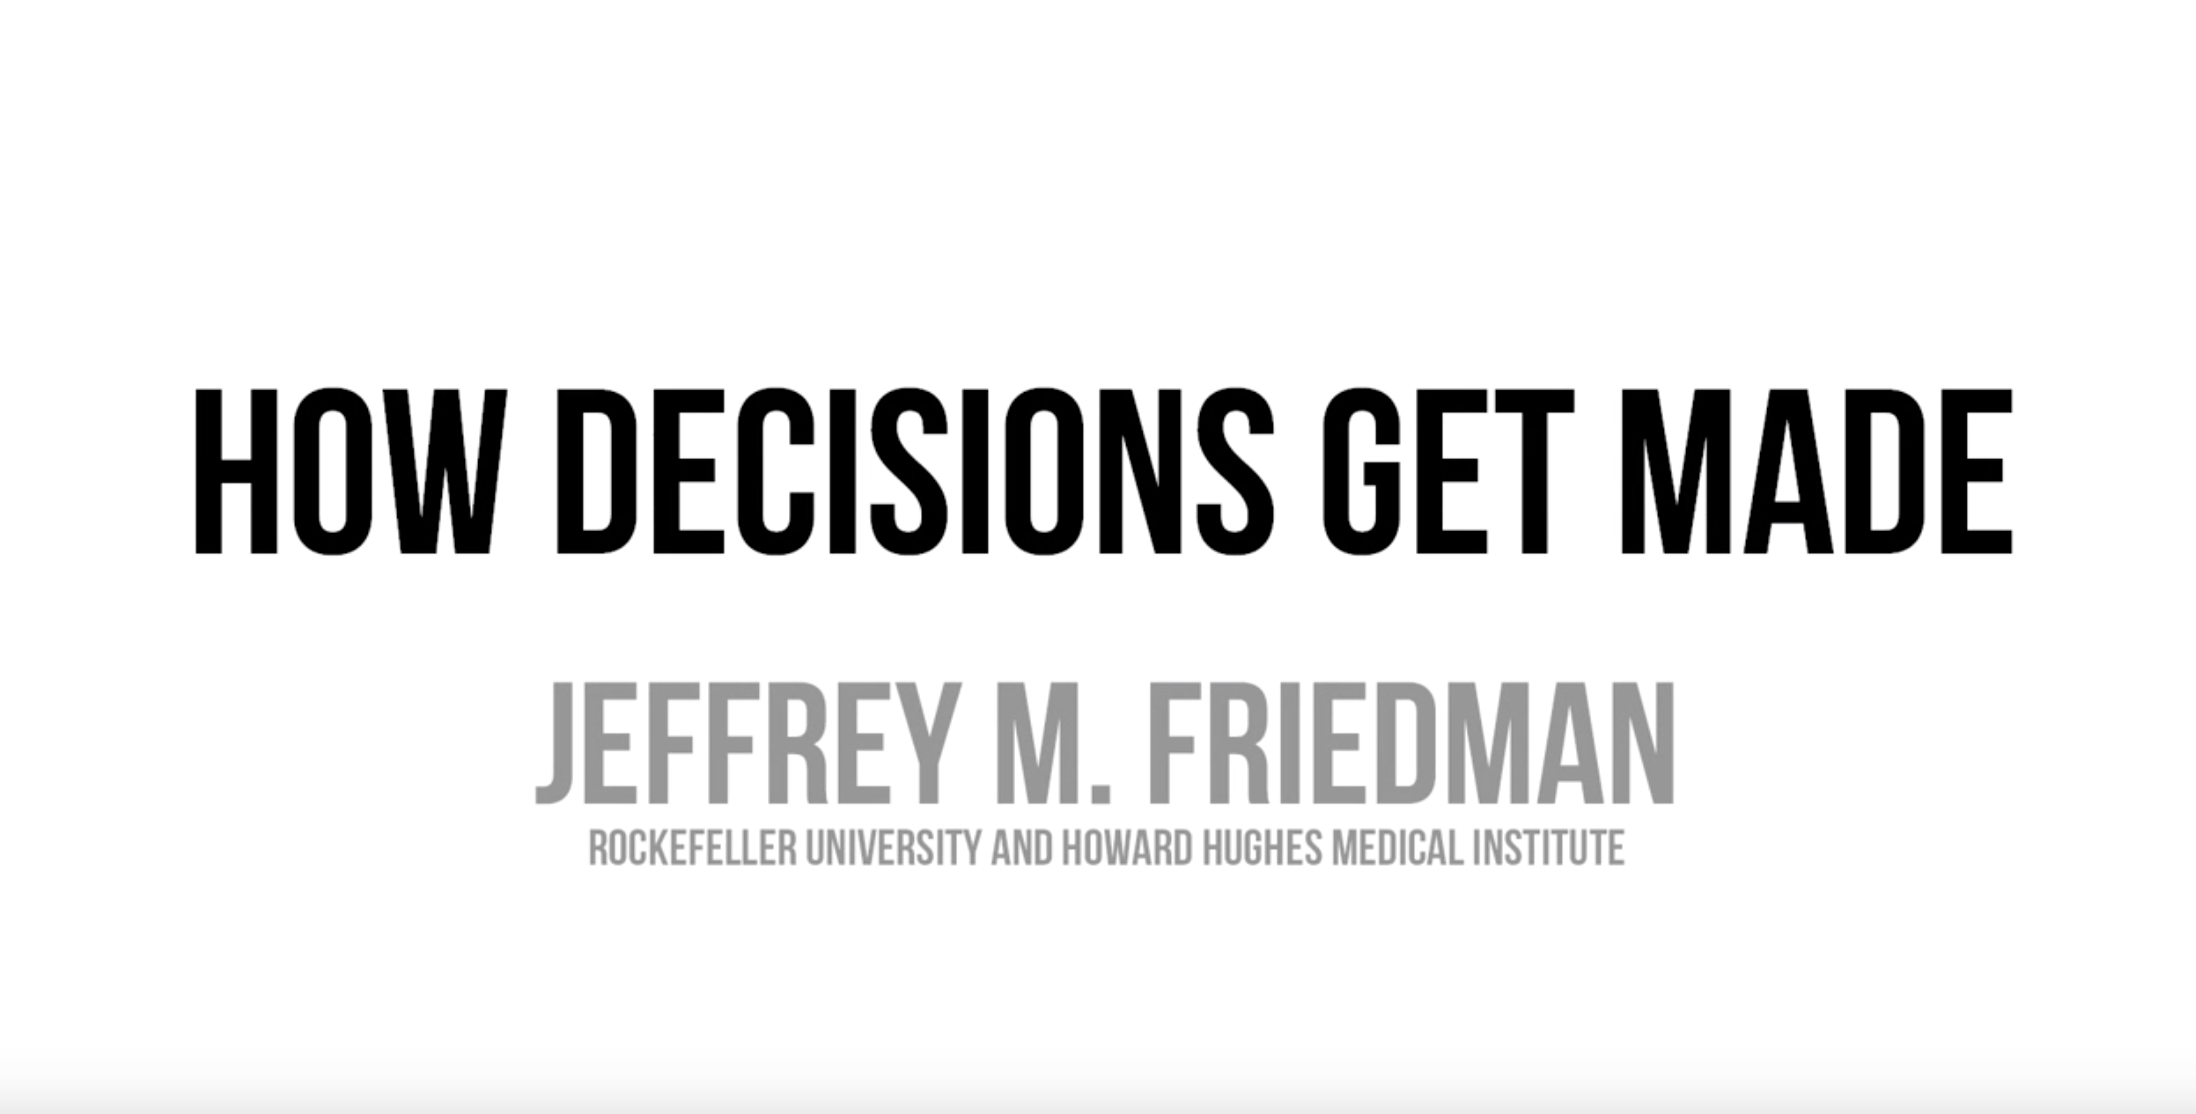 How Decisions Get Made: An interview of Jeffrey M. Friedman by Jessica Lessin